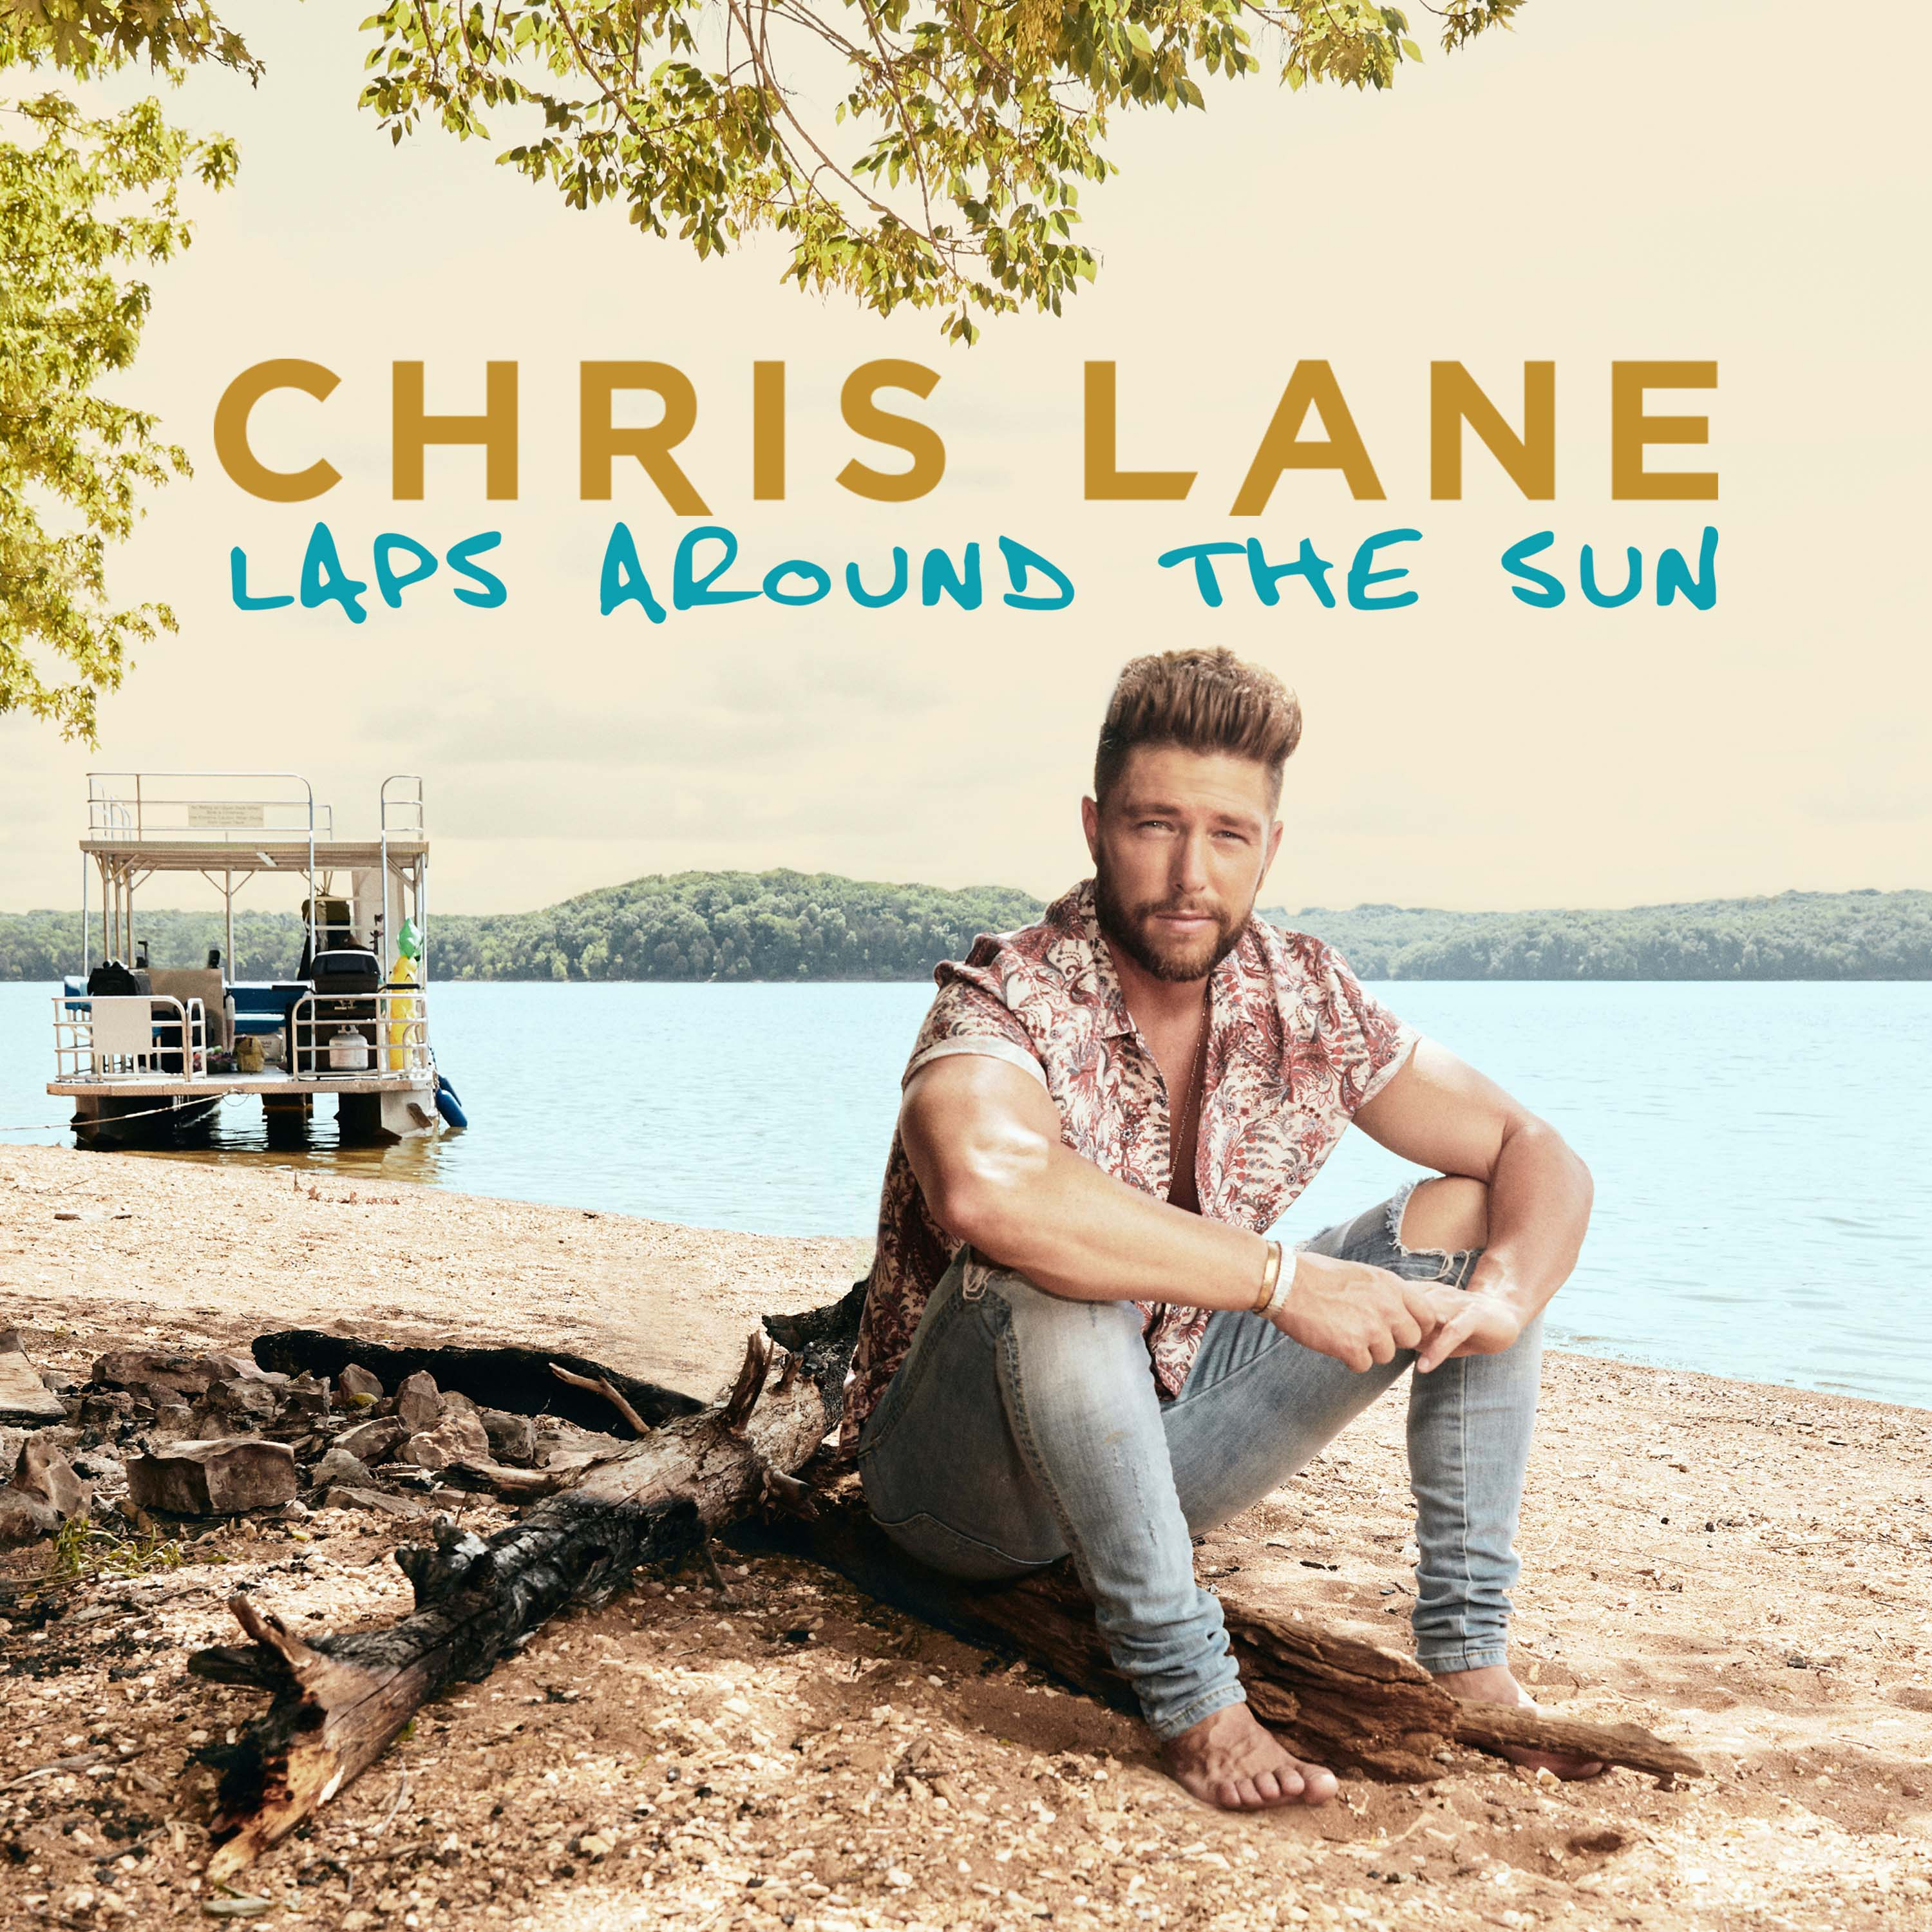 Win a Once-In-a-Lifetime Experience with Chris Lane!